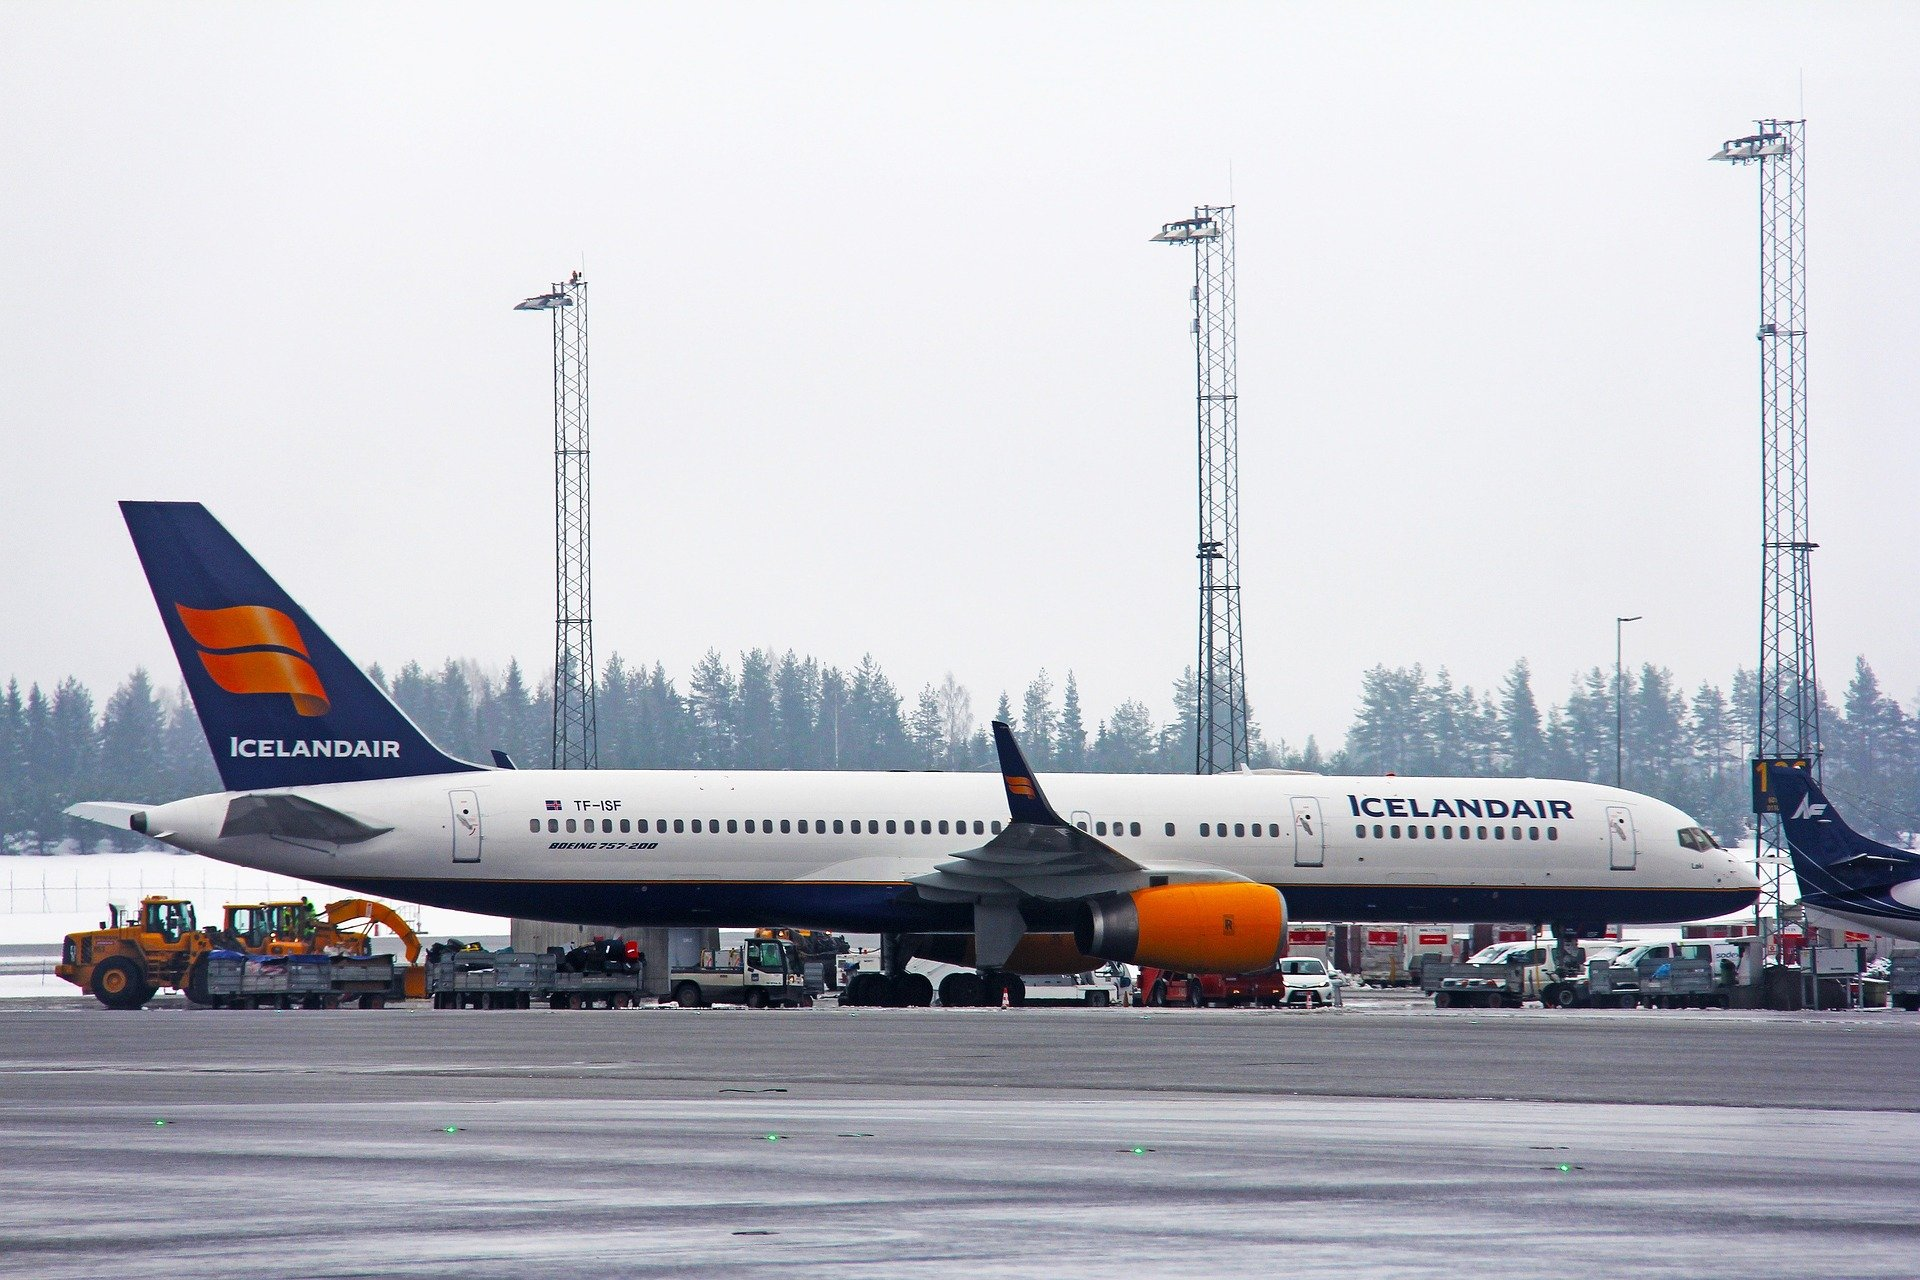 Icelandair plane on airport tarmac in wintertime